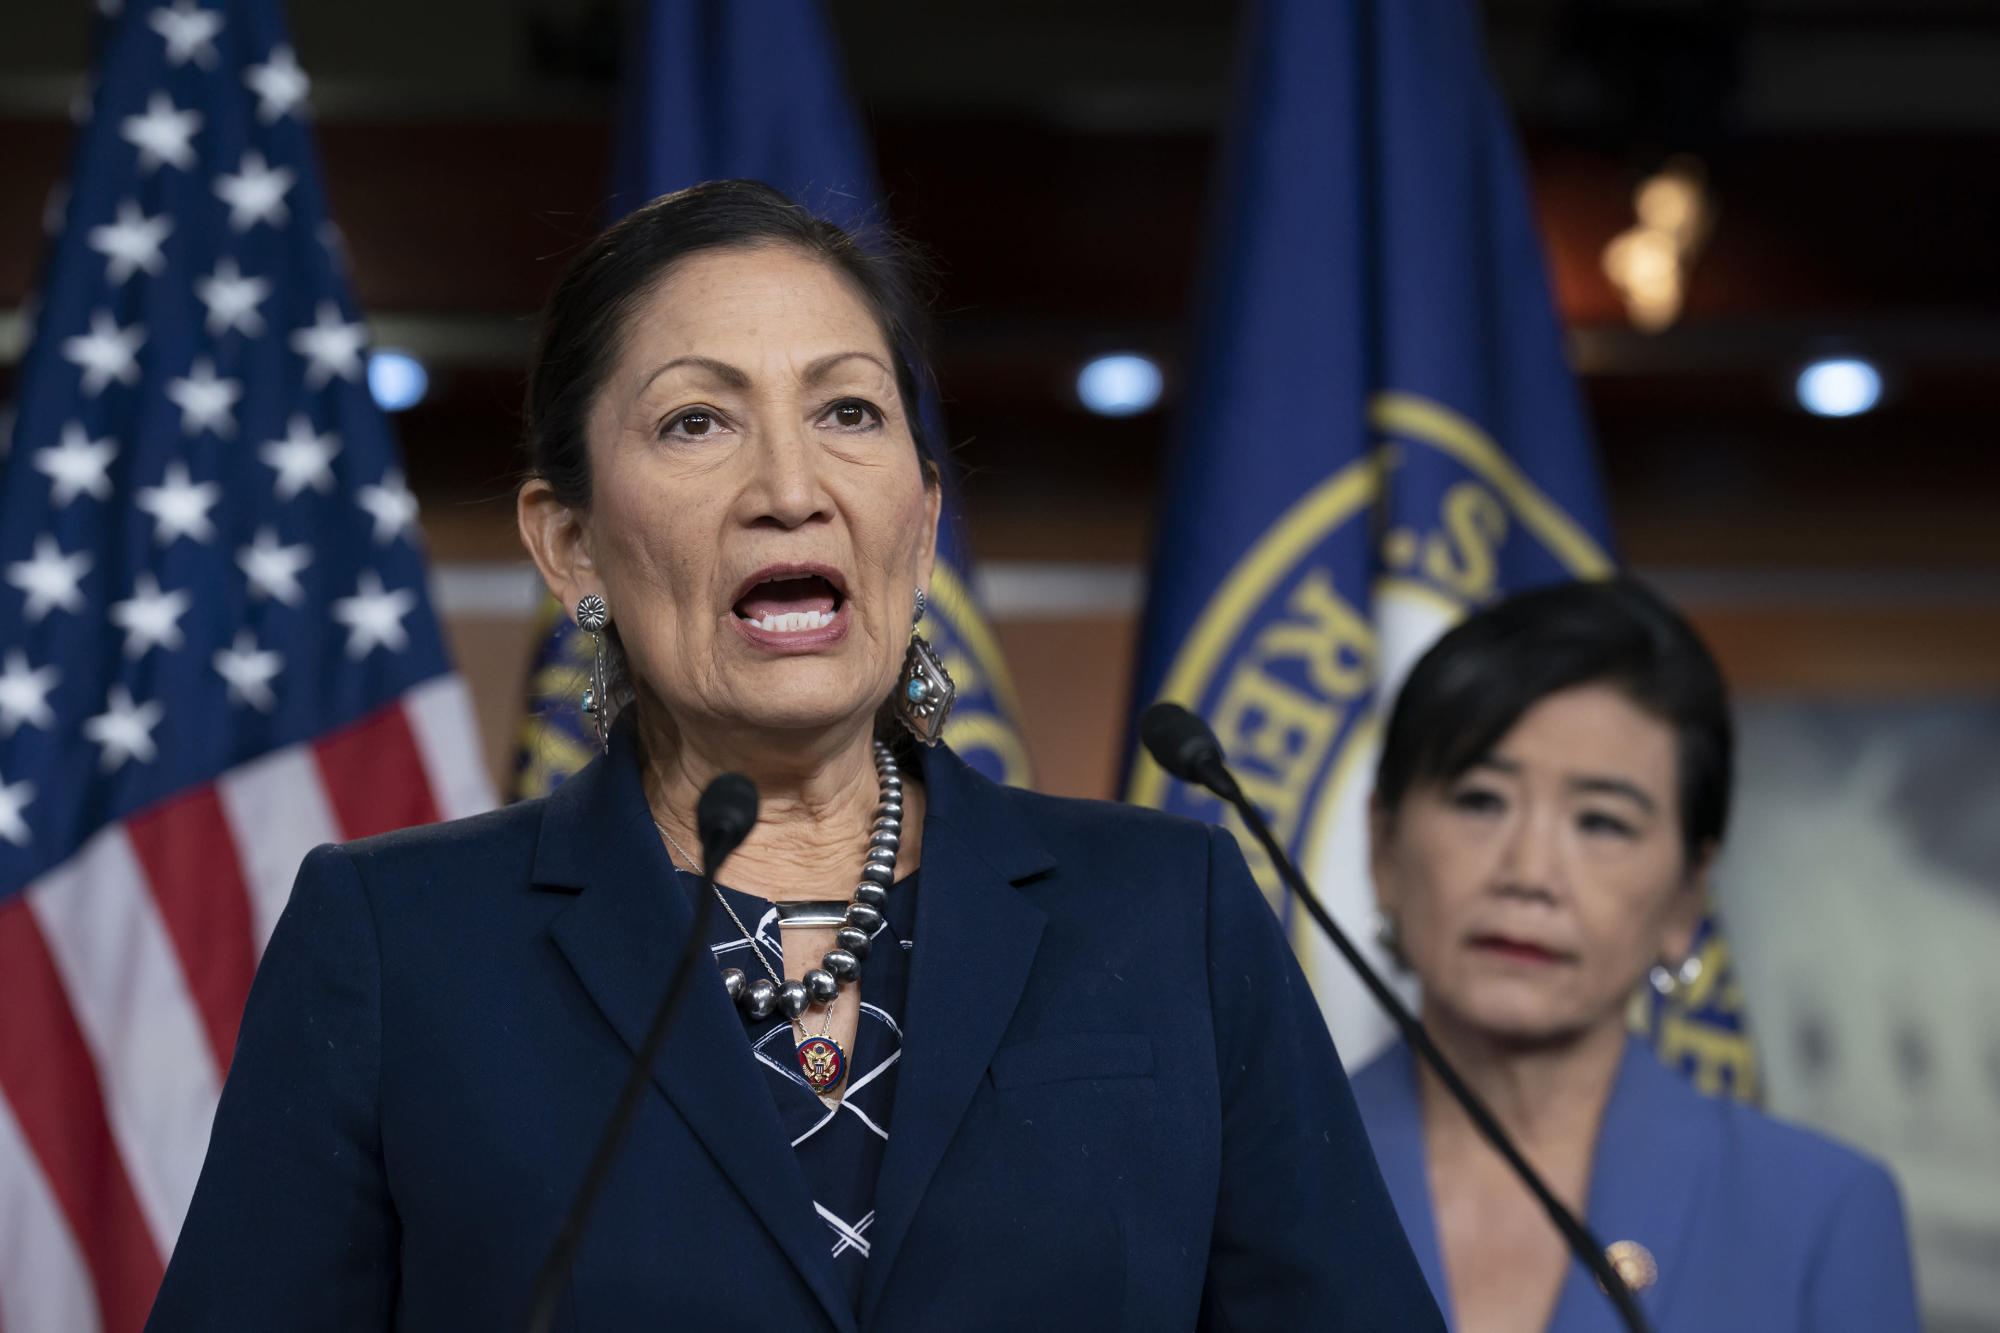 Interior nominee Haaland vows 'balance' on energy, climate